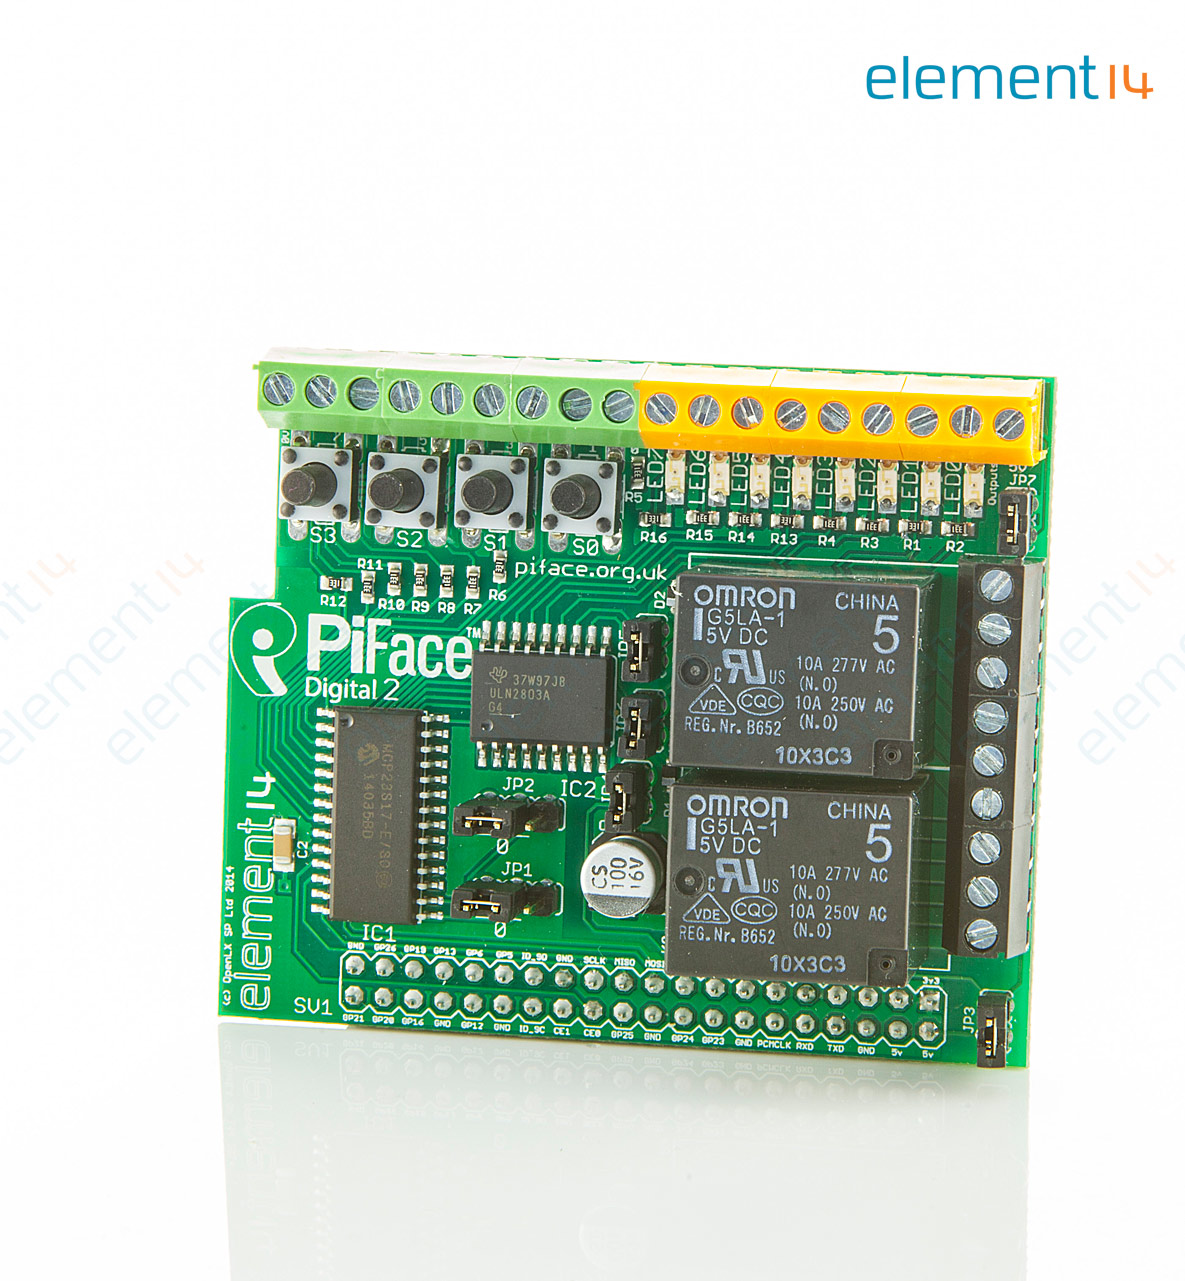 Piface Board Schematic Modmypi Pirack Circuit Rack Expansion Buy Accessory For Raspberry Pi Connect Up To 4 Additional Boards At Element14